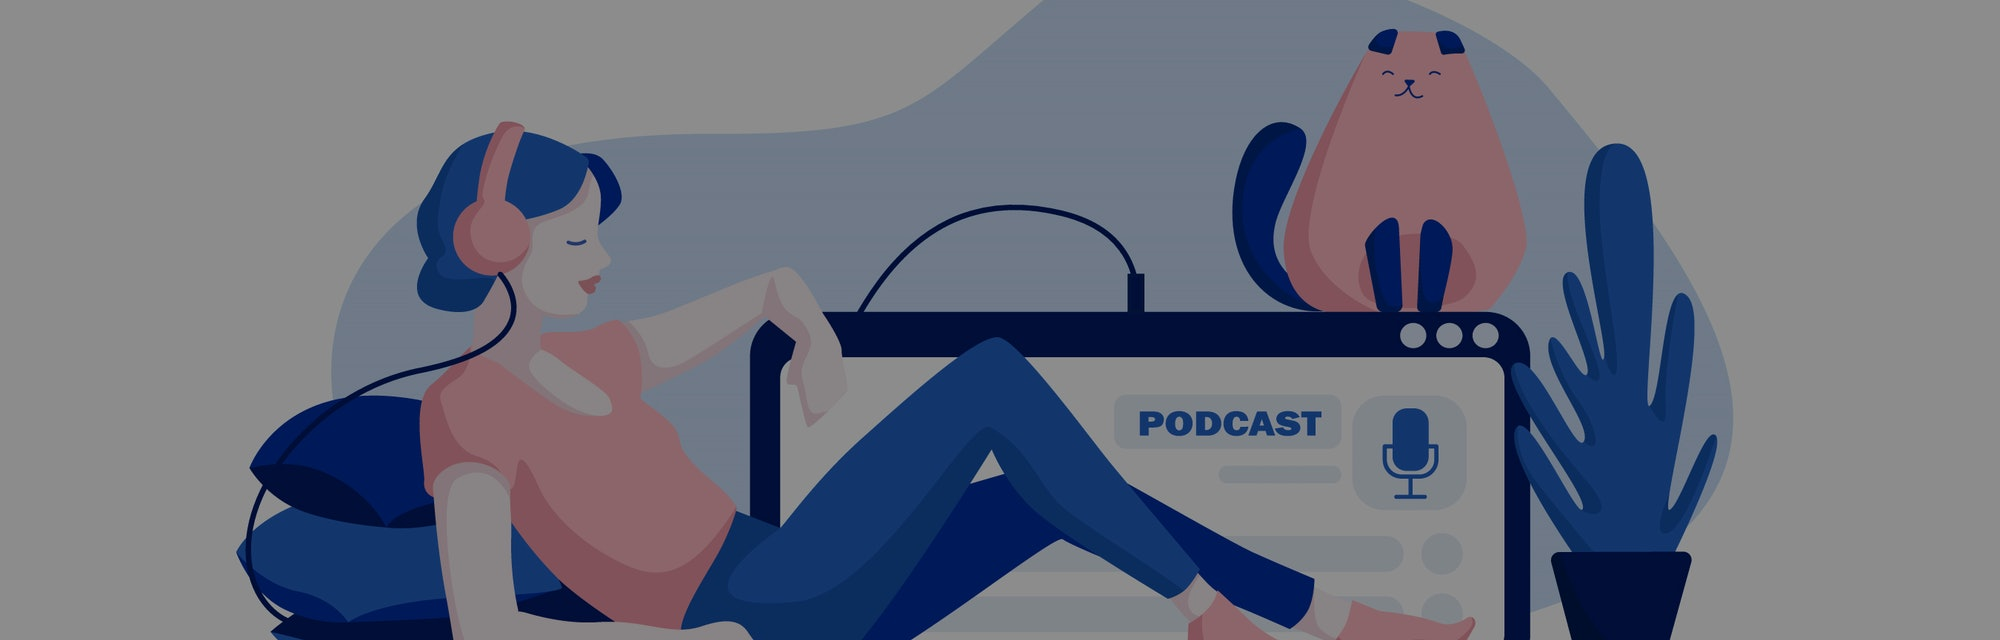 Podcast concept illustration. Webinar, online training, tutorial podcast concept. Young female listening to podcasting sitting on the floor of the house. Vector illustration.